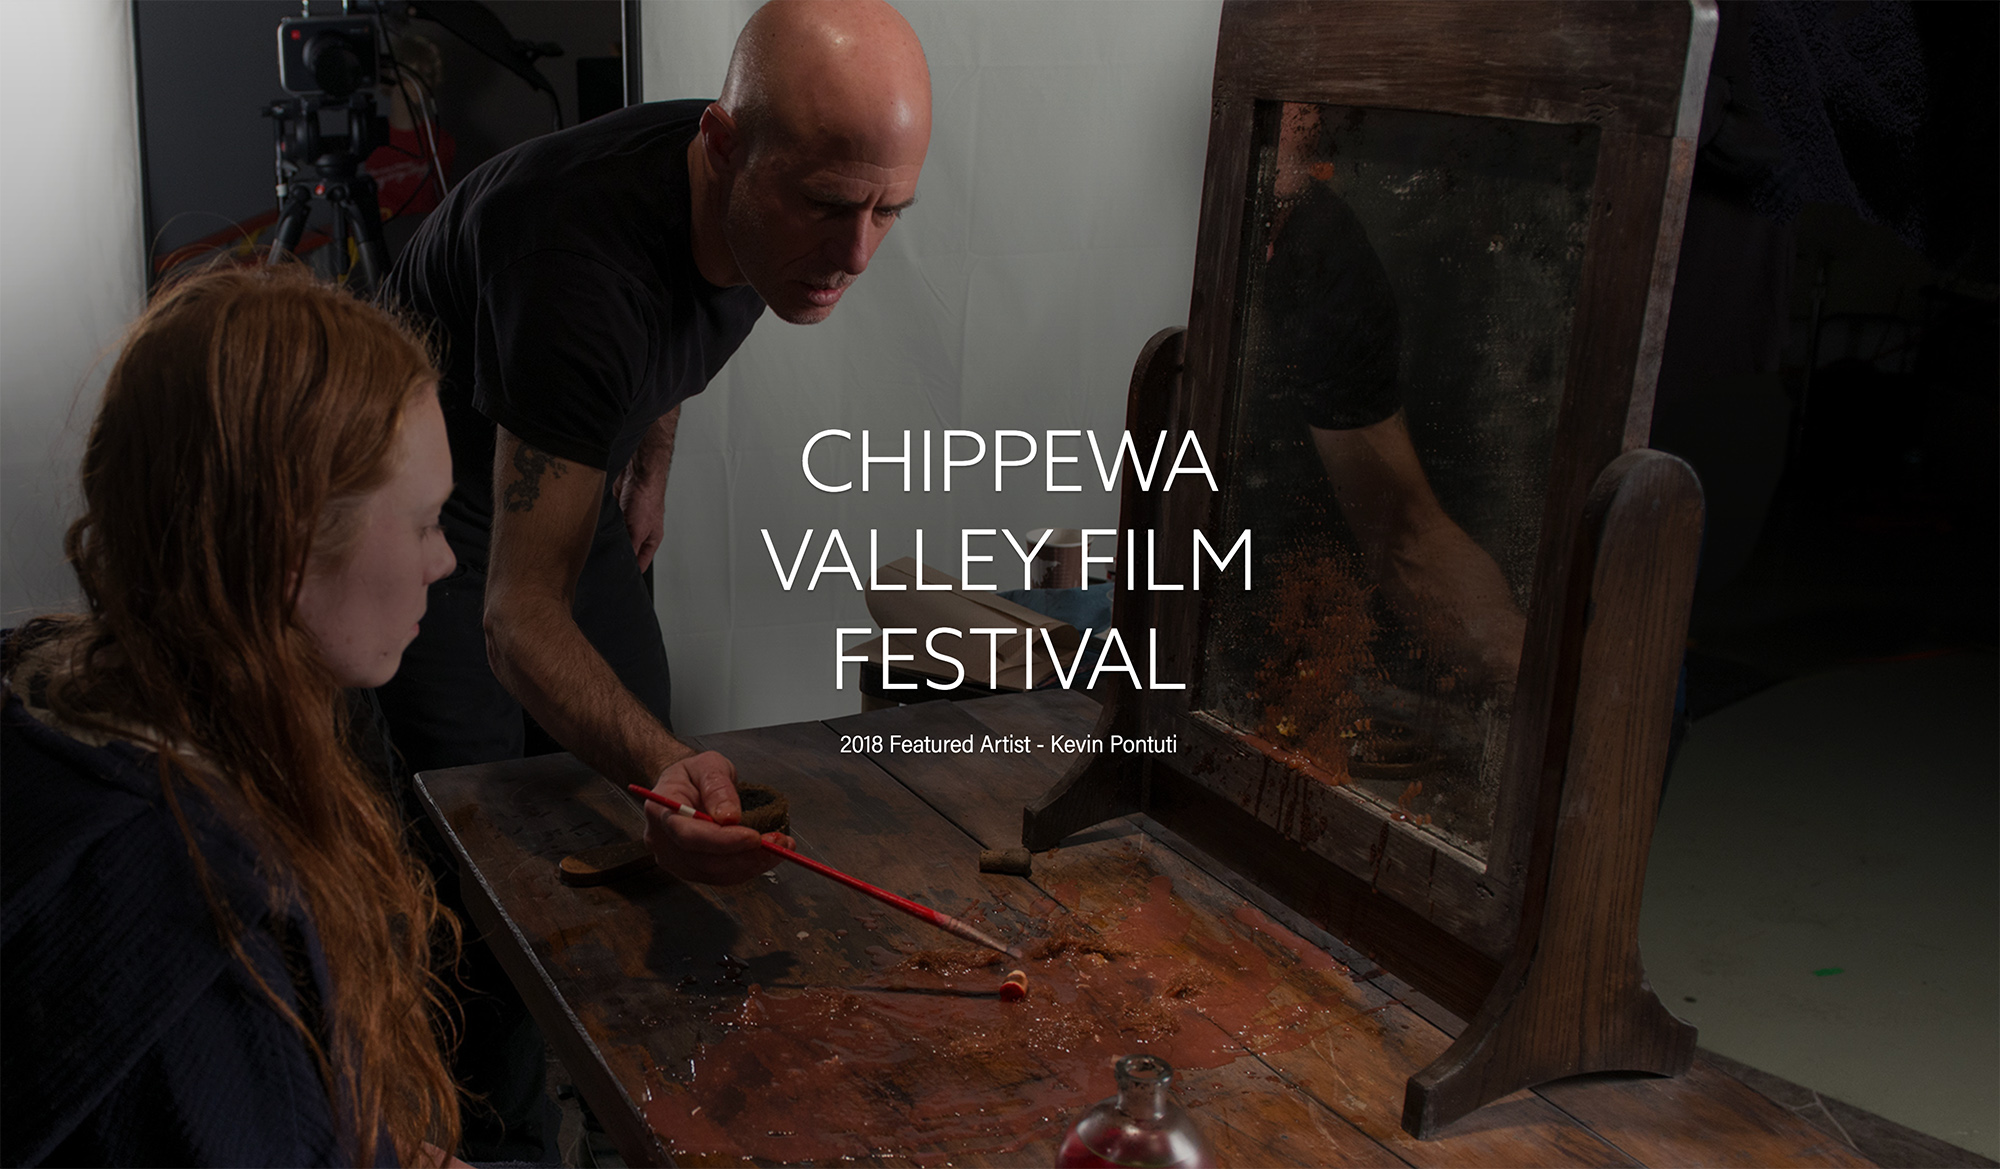 Filmmaker Kevin Pontuti to be featured at the 2018 Chippewa Valley Film Festival with a special screening and artist talk. Full Story